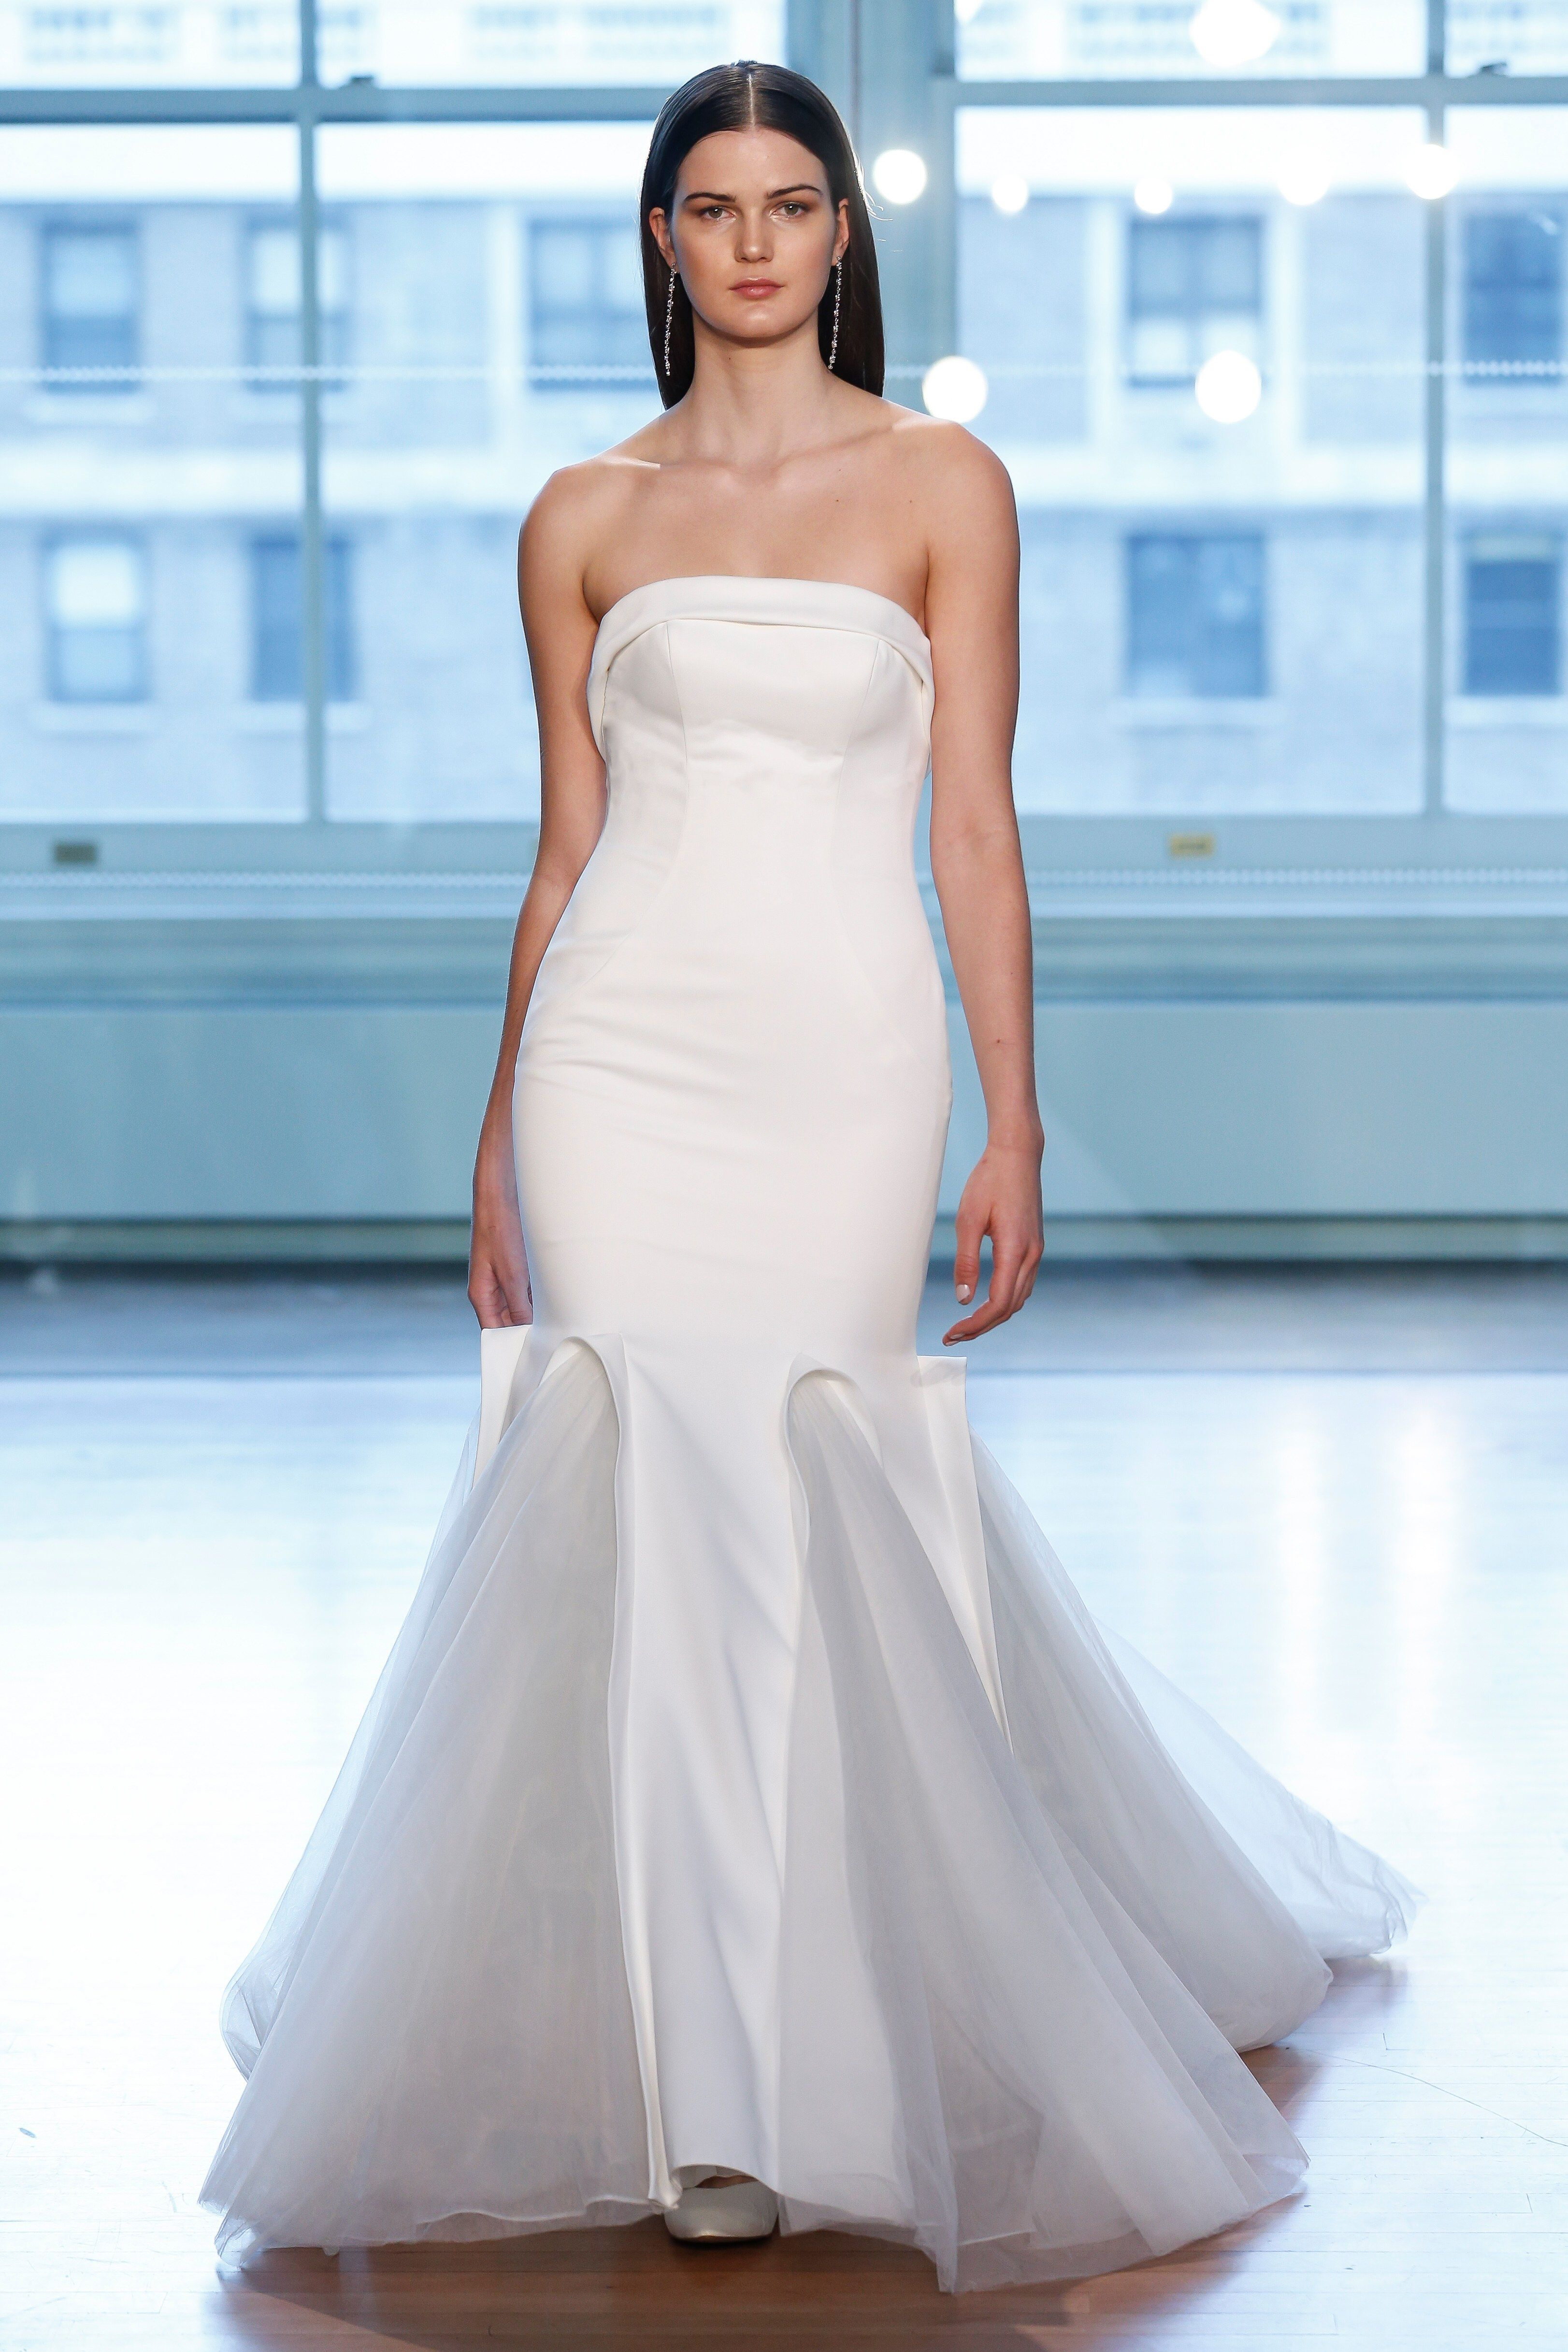 Justin alexander bridal u wedding dress collectiu a wish is a